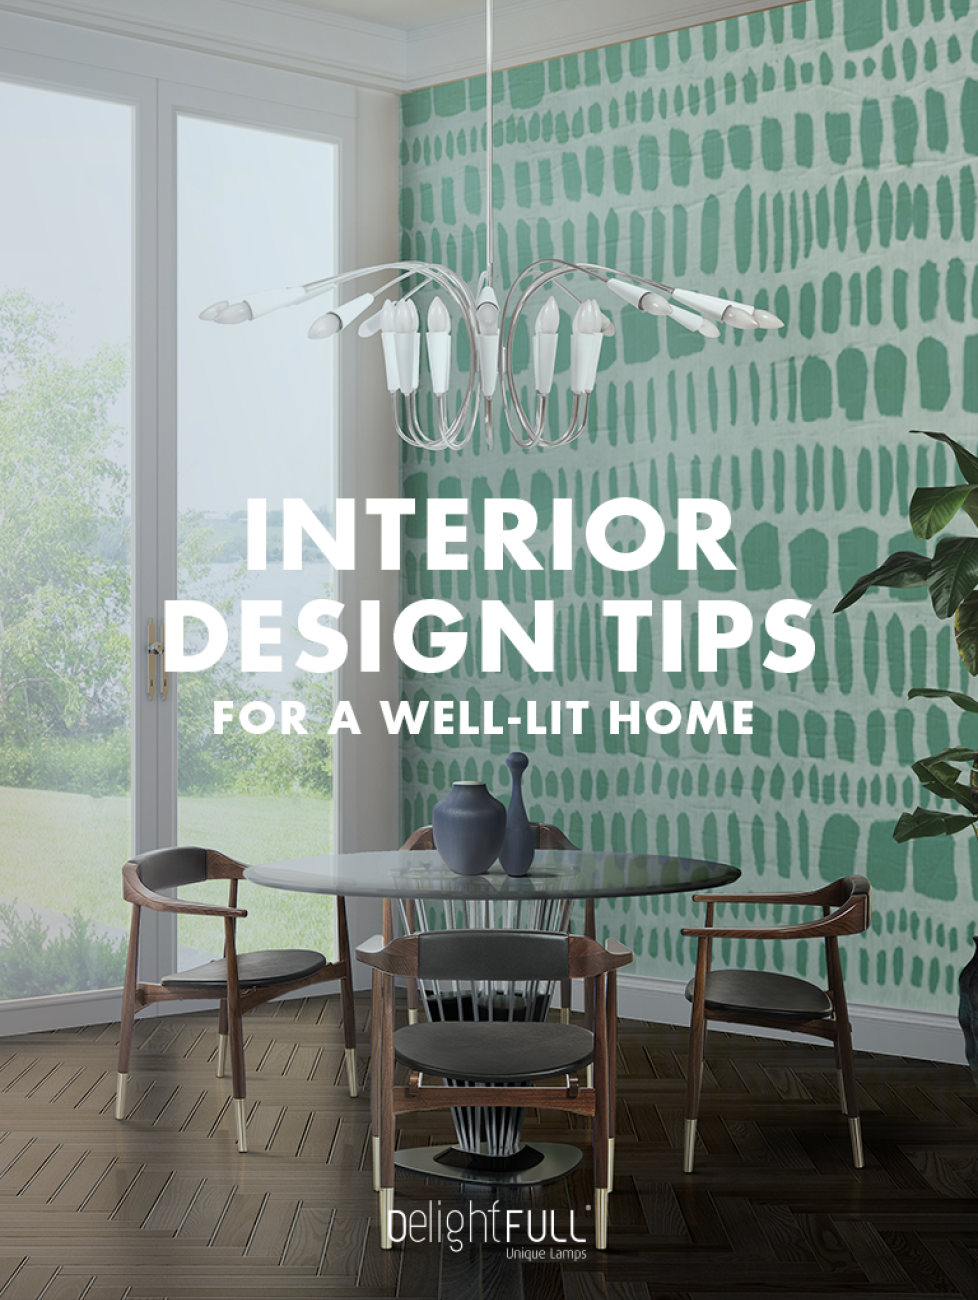 'Interior Design Tips for a Well-Lit Home!' The Bible of Lighting (1) interior design tips 'Interior Design Tips for a Well-Lit Home!': The Bible of Lighting    Interior Design Tips for a Well Lit Home The Bible of Lighting 2